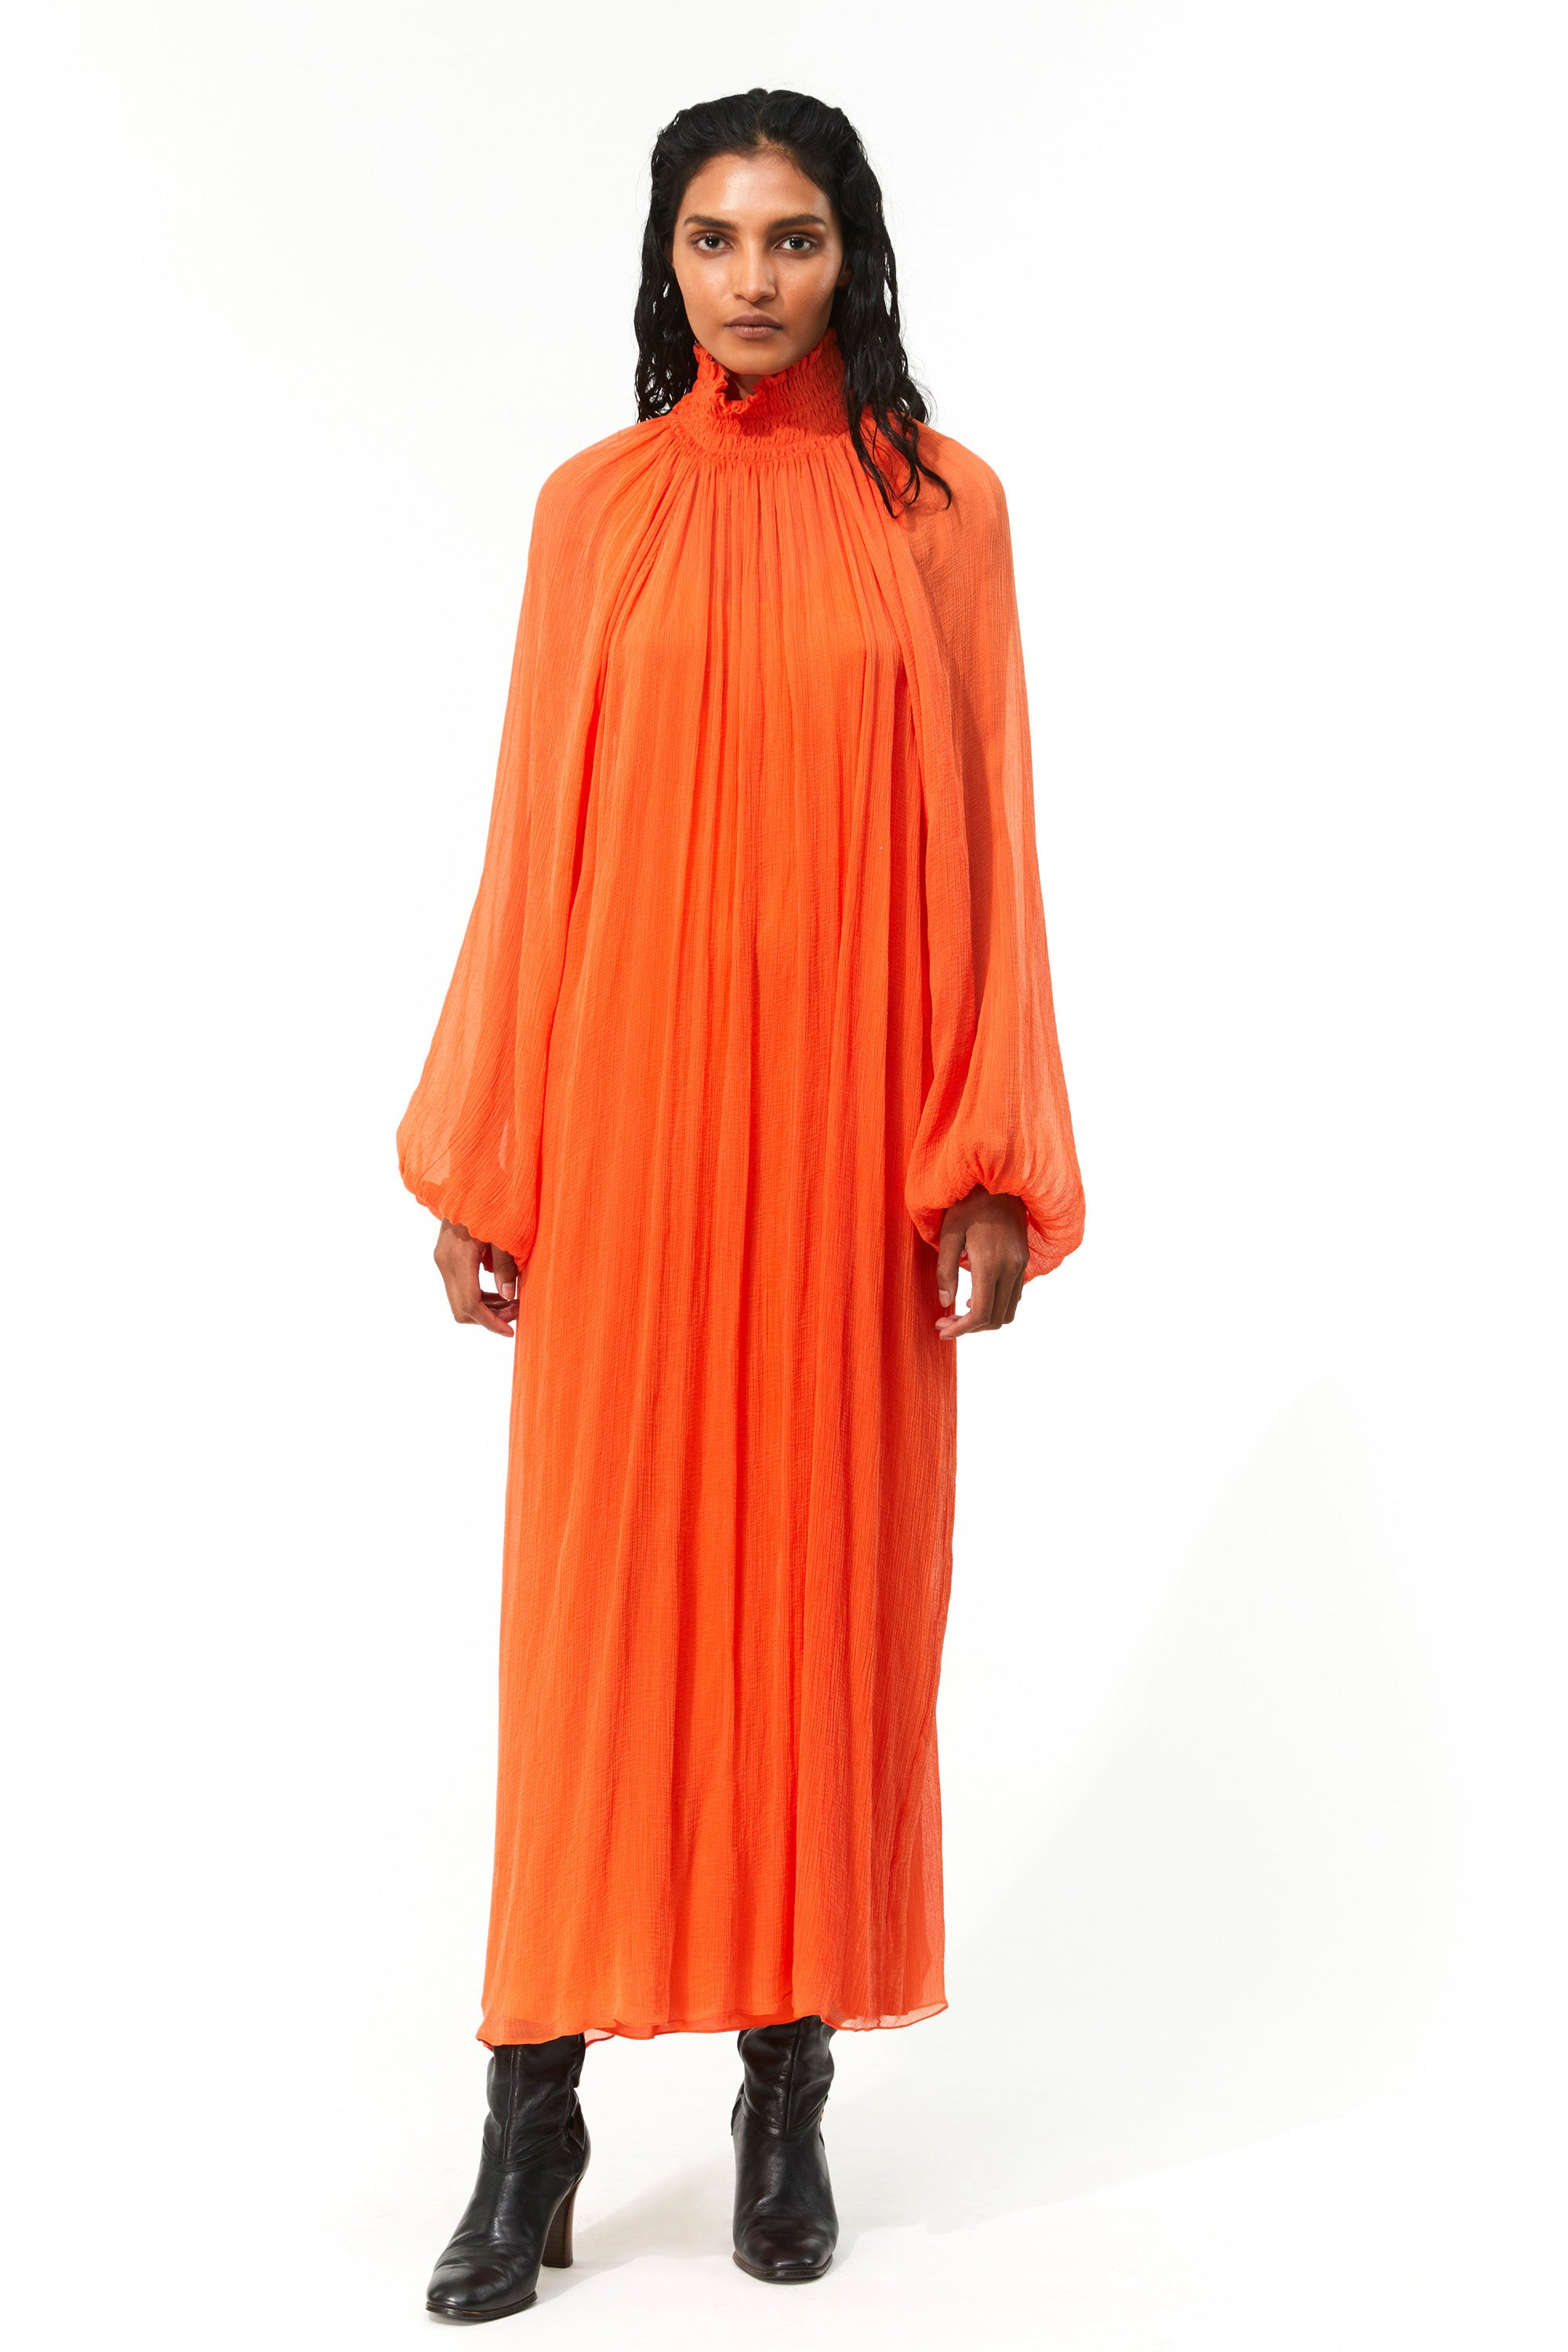 Mara Hoffman Orange Edmonia Dress in Tencel Luxe (front)